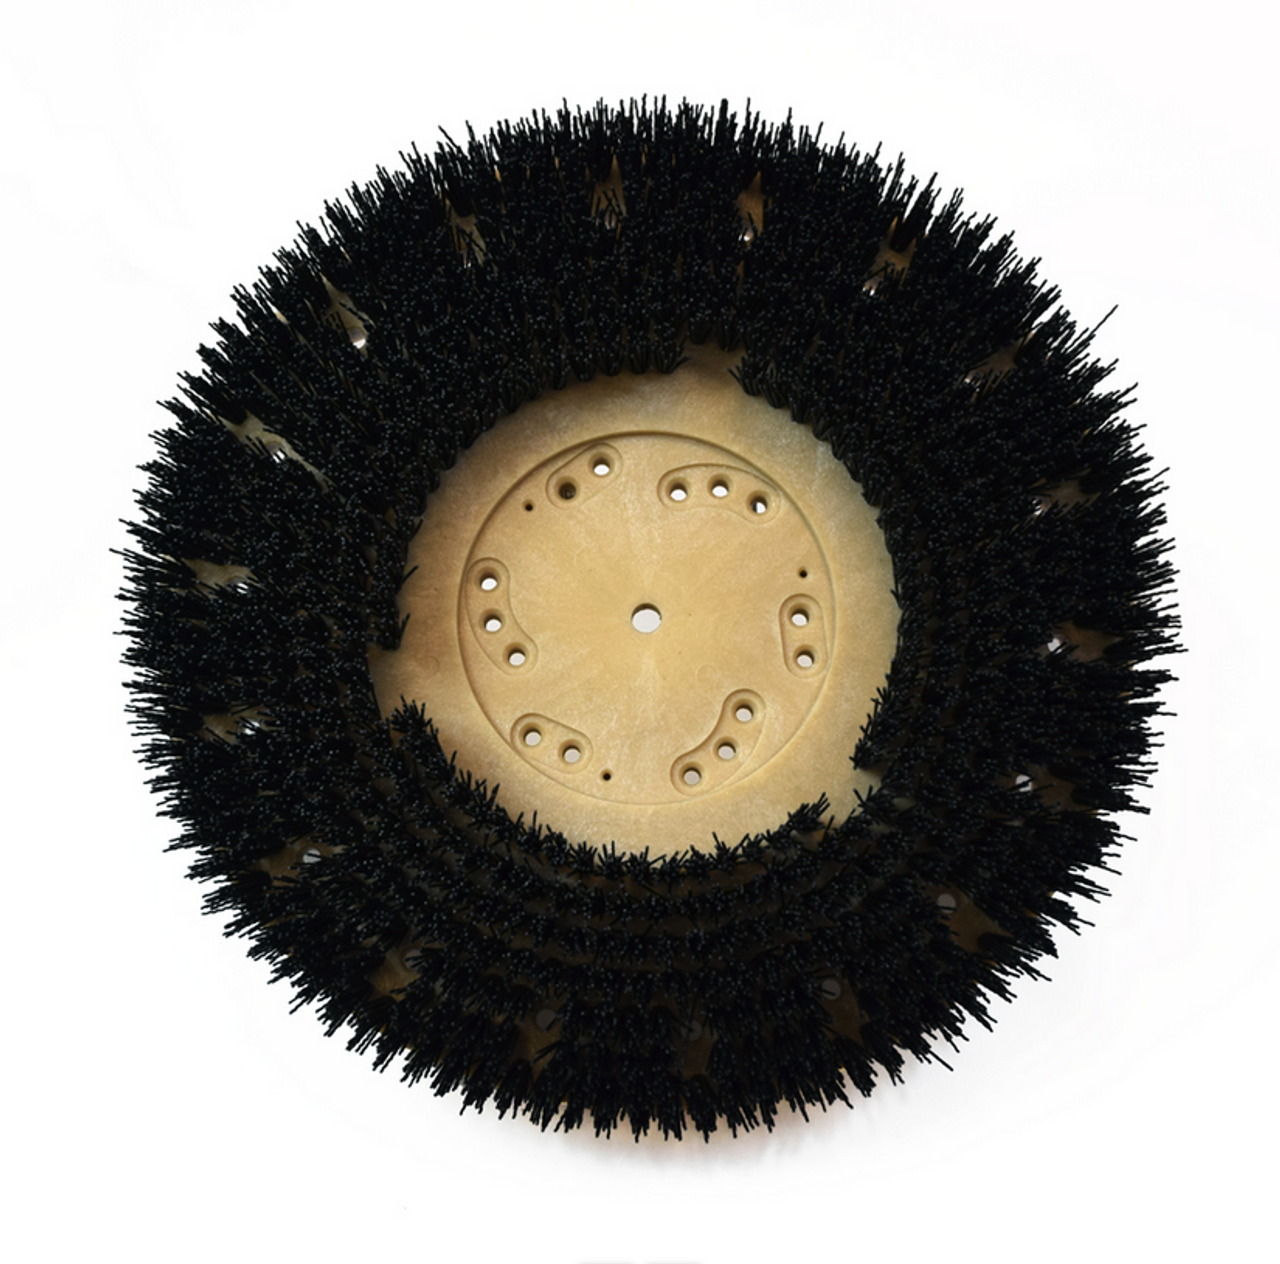 Our most popular grit floor brush! An aggressive brush for general scrubbing or stripping finishes from hard surfaces.